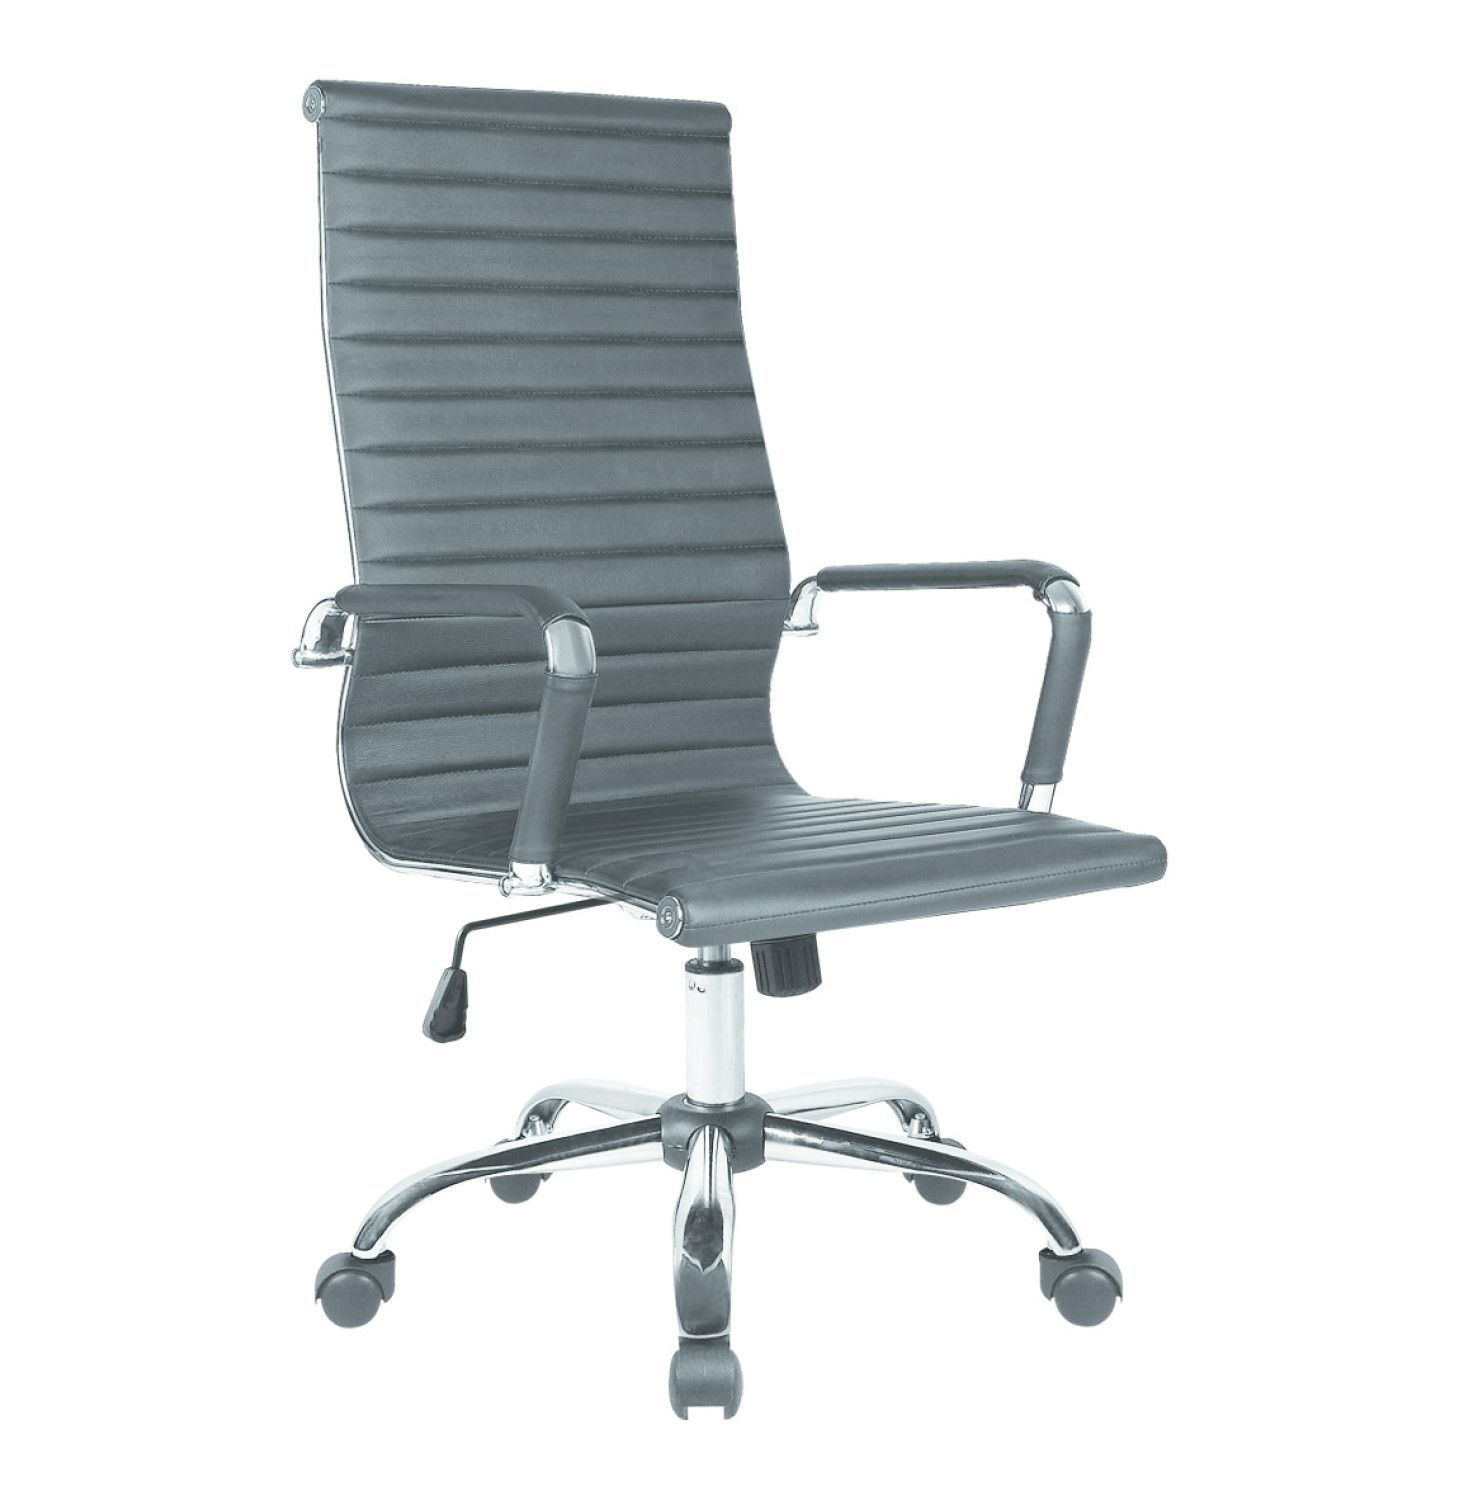 LINX Sleek High Back Chair Black Lowest Prices & Specials line